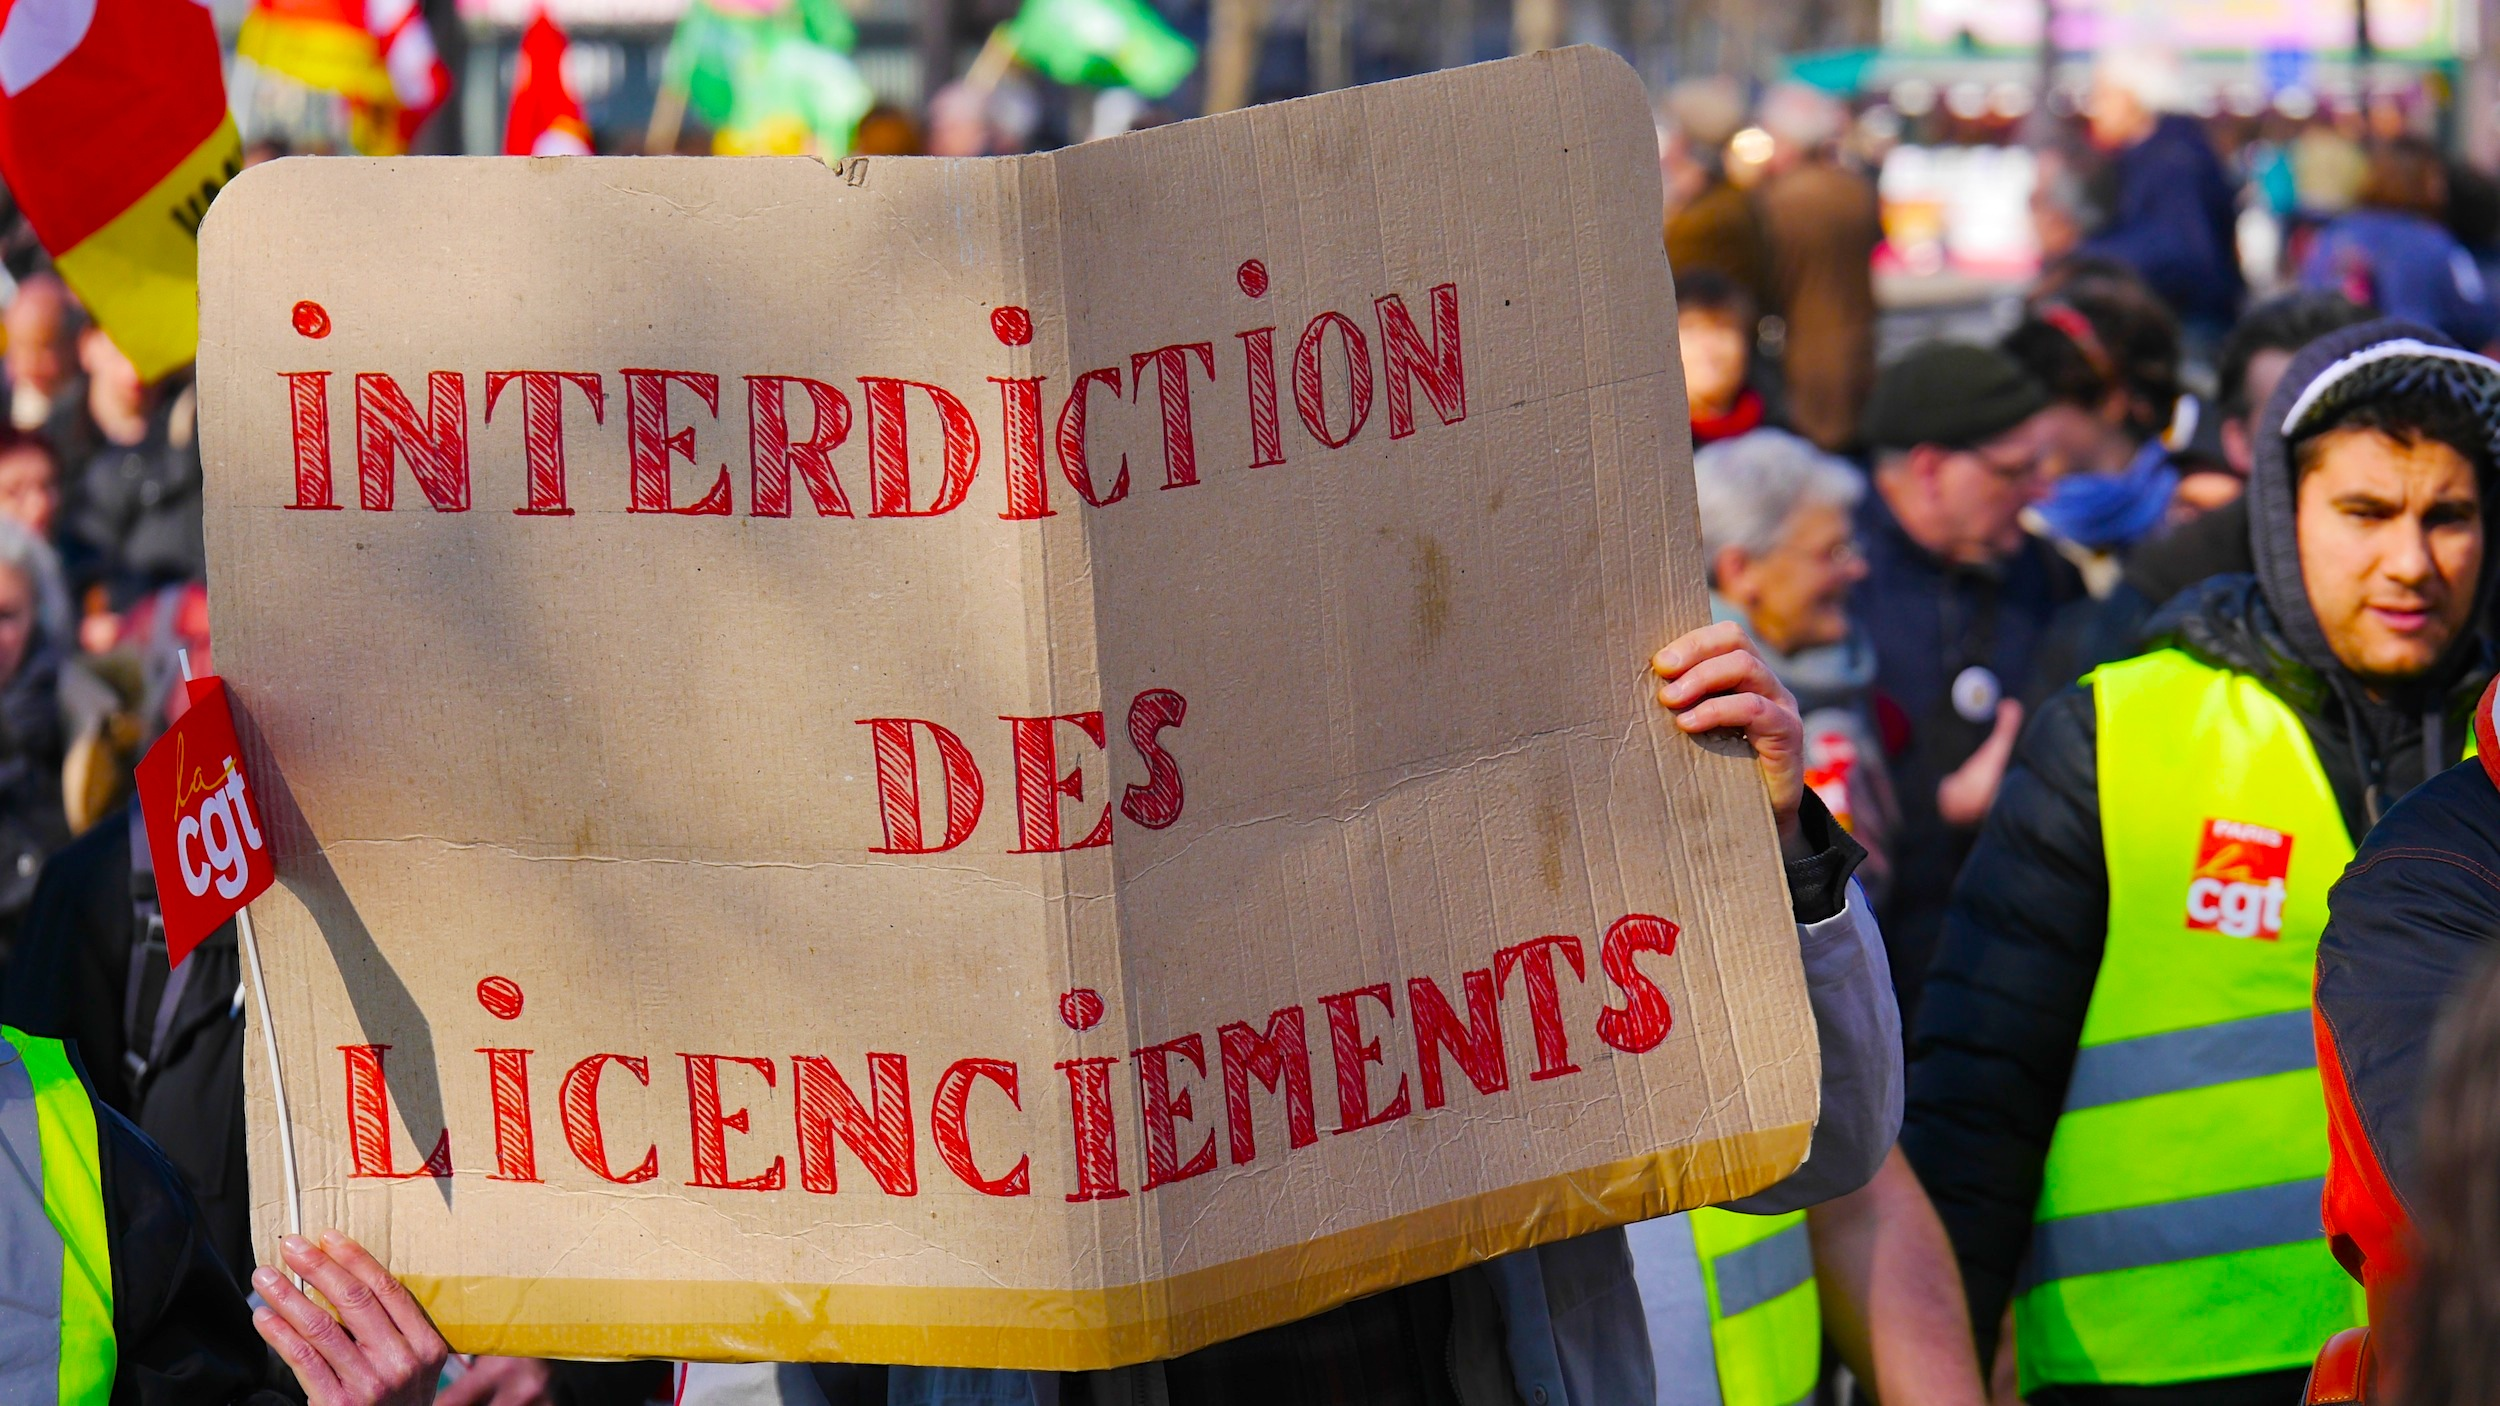 «Interdiction des licenciements»